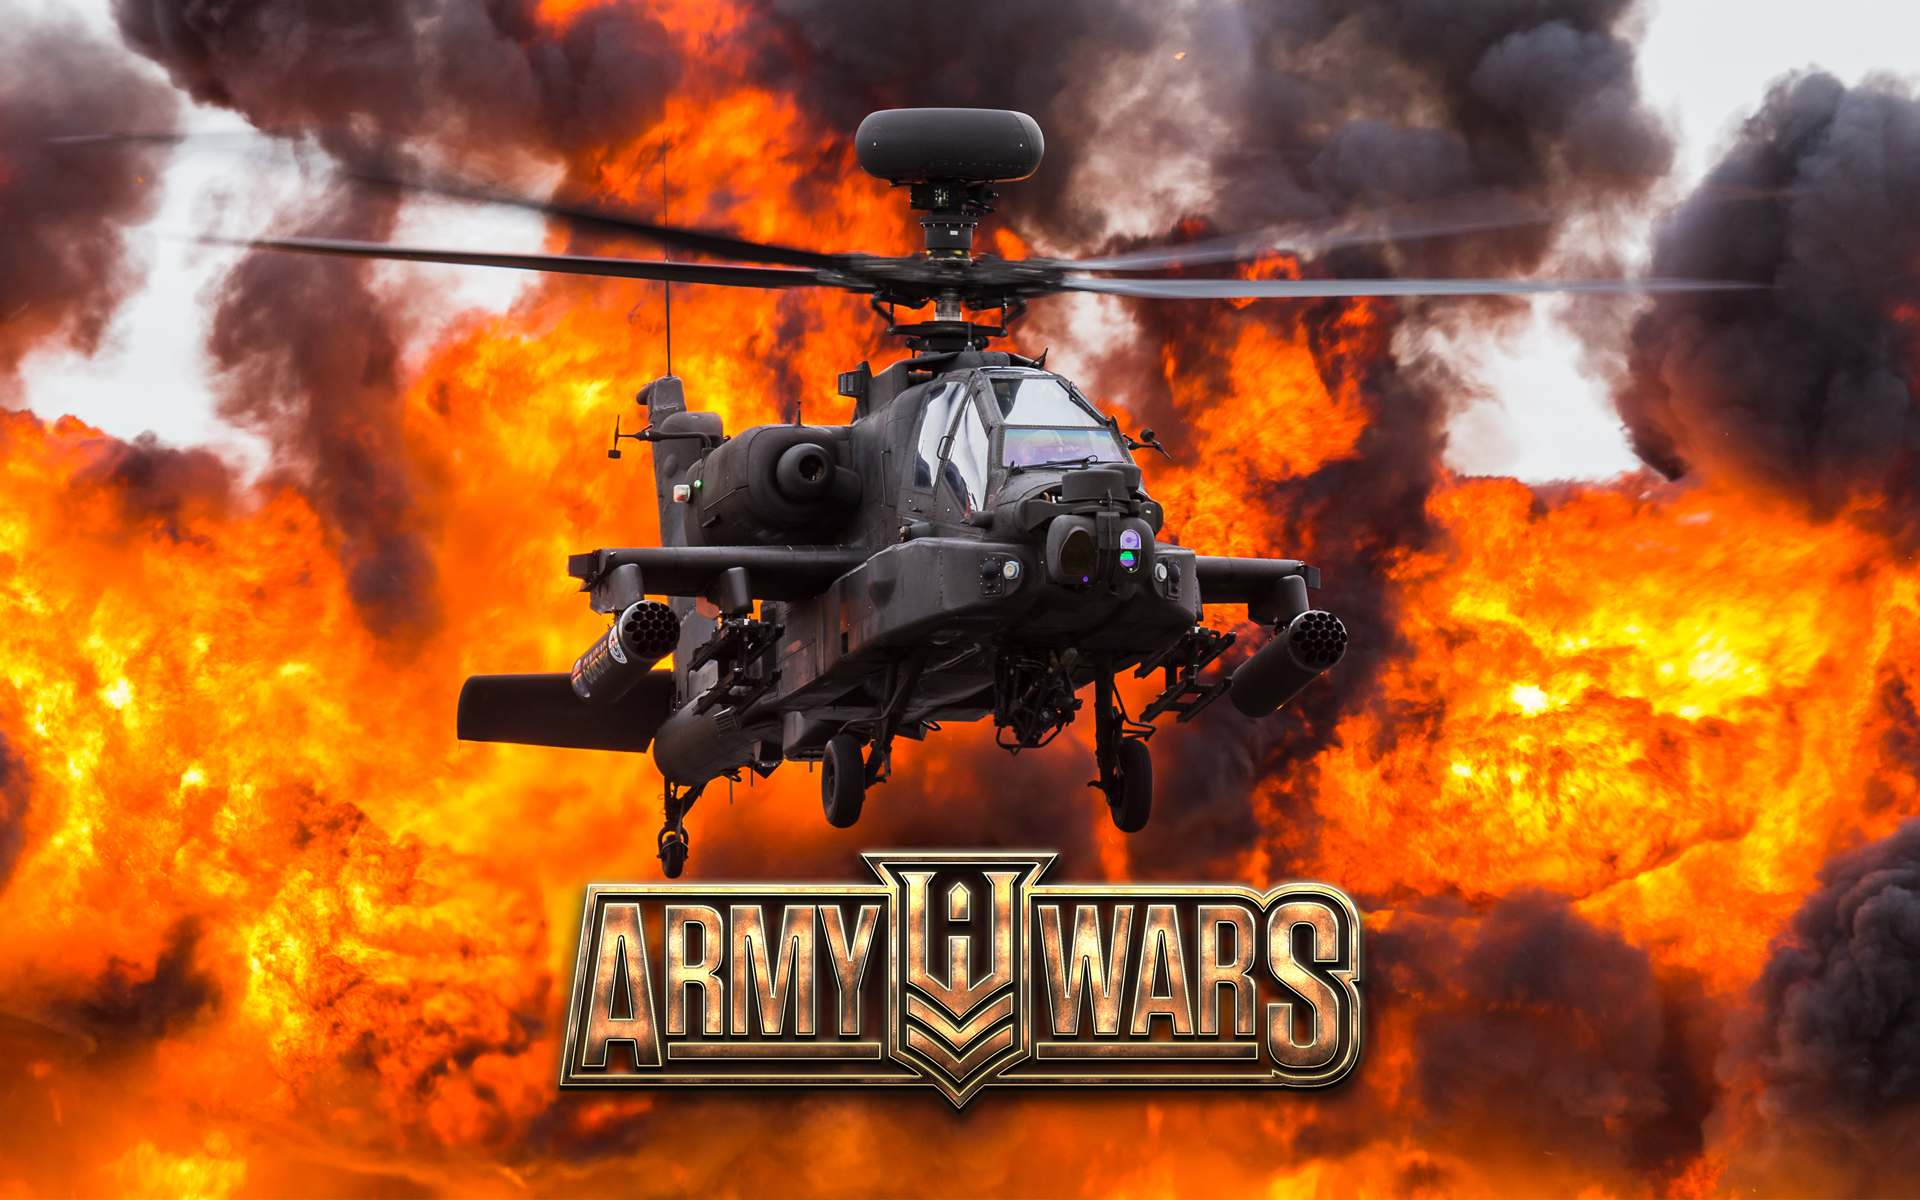 Army Wars MMORTS Free to Play Game